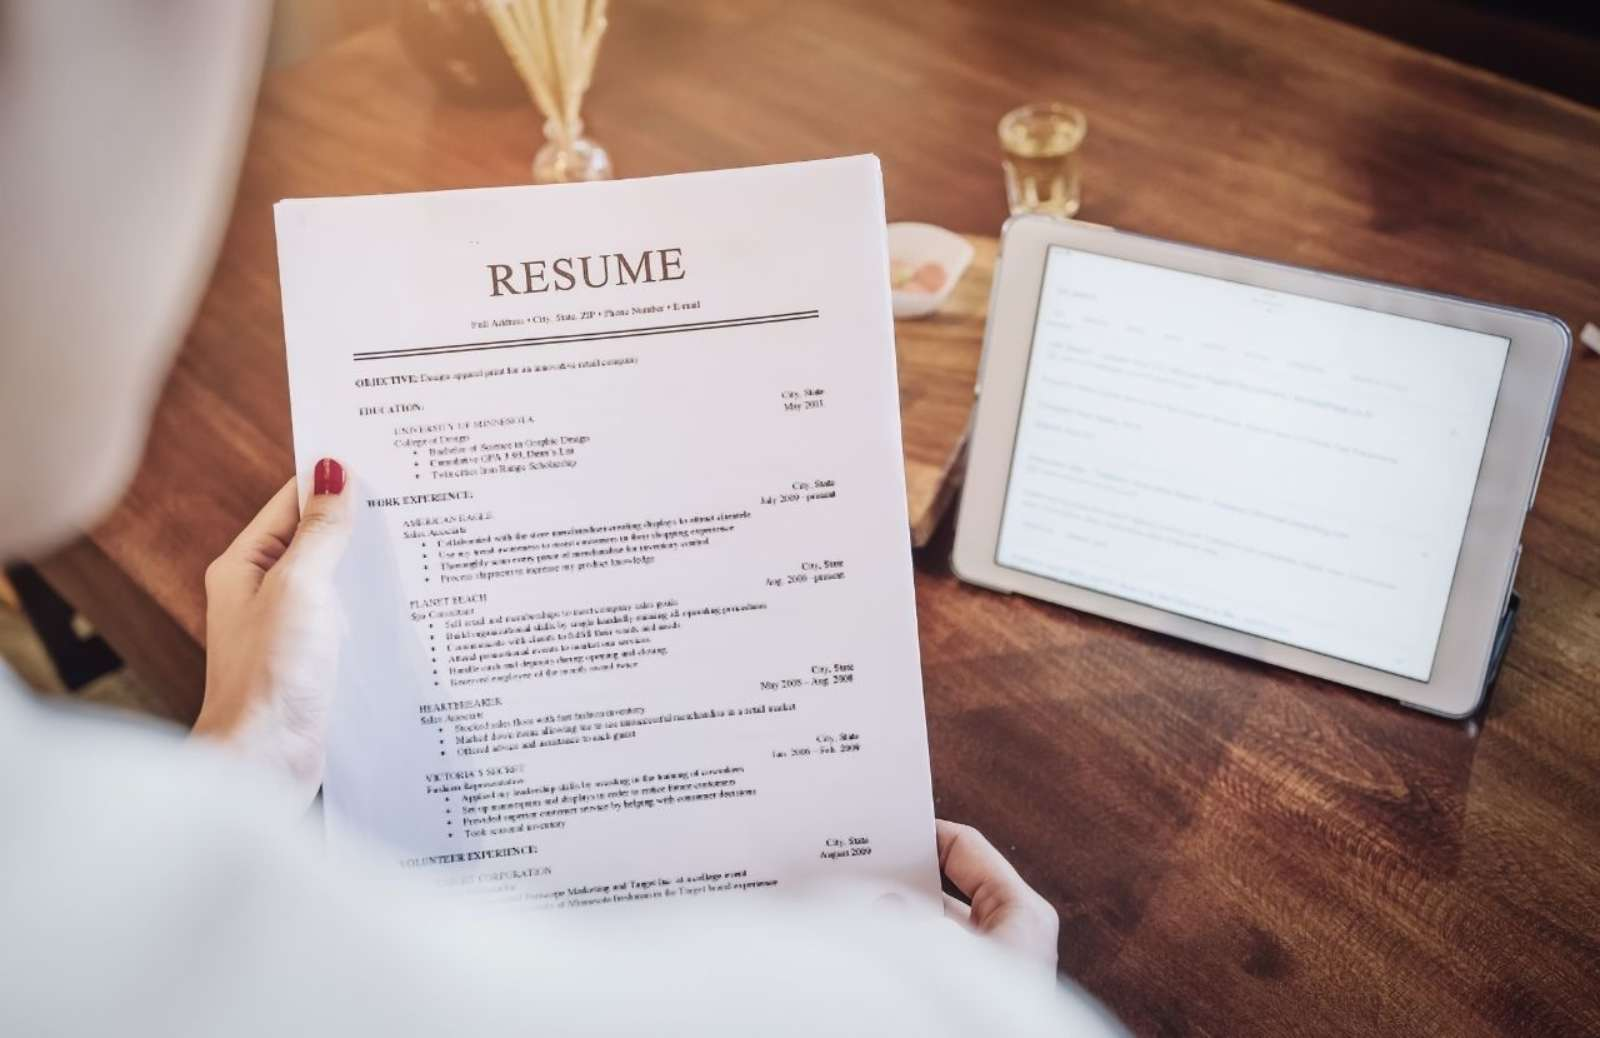 Person holding resume over desk with tablet